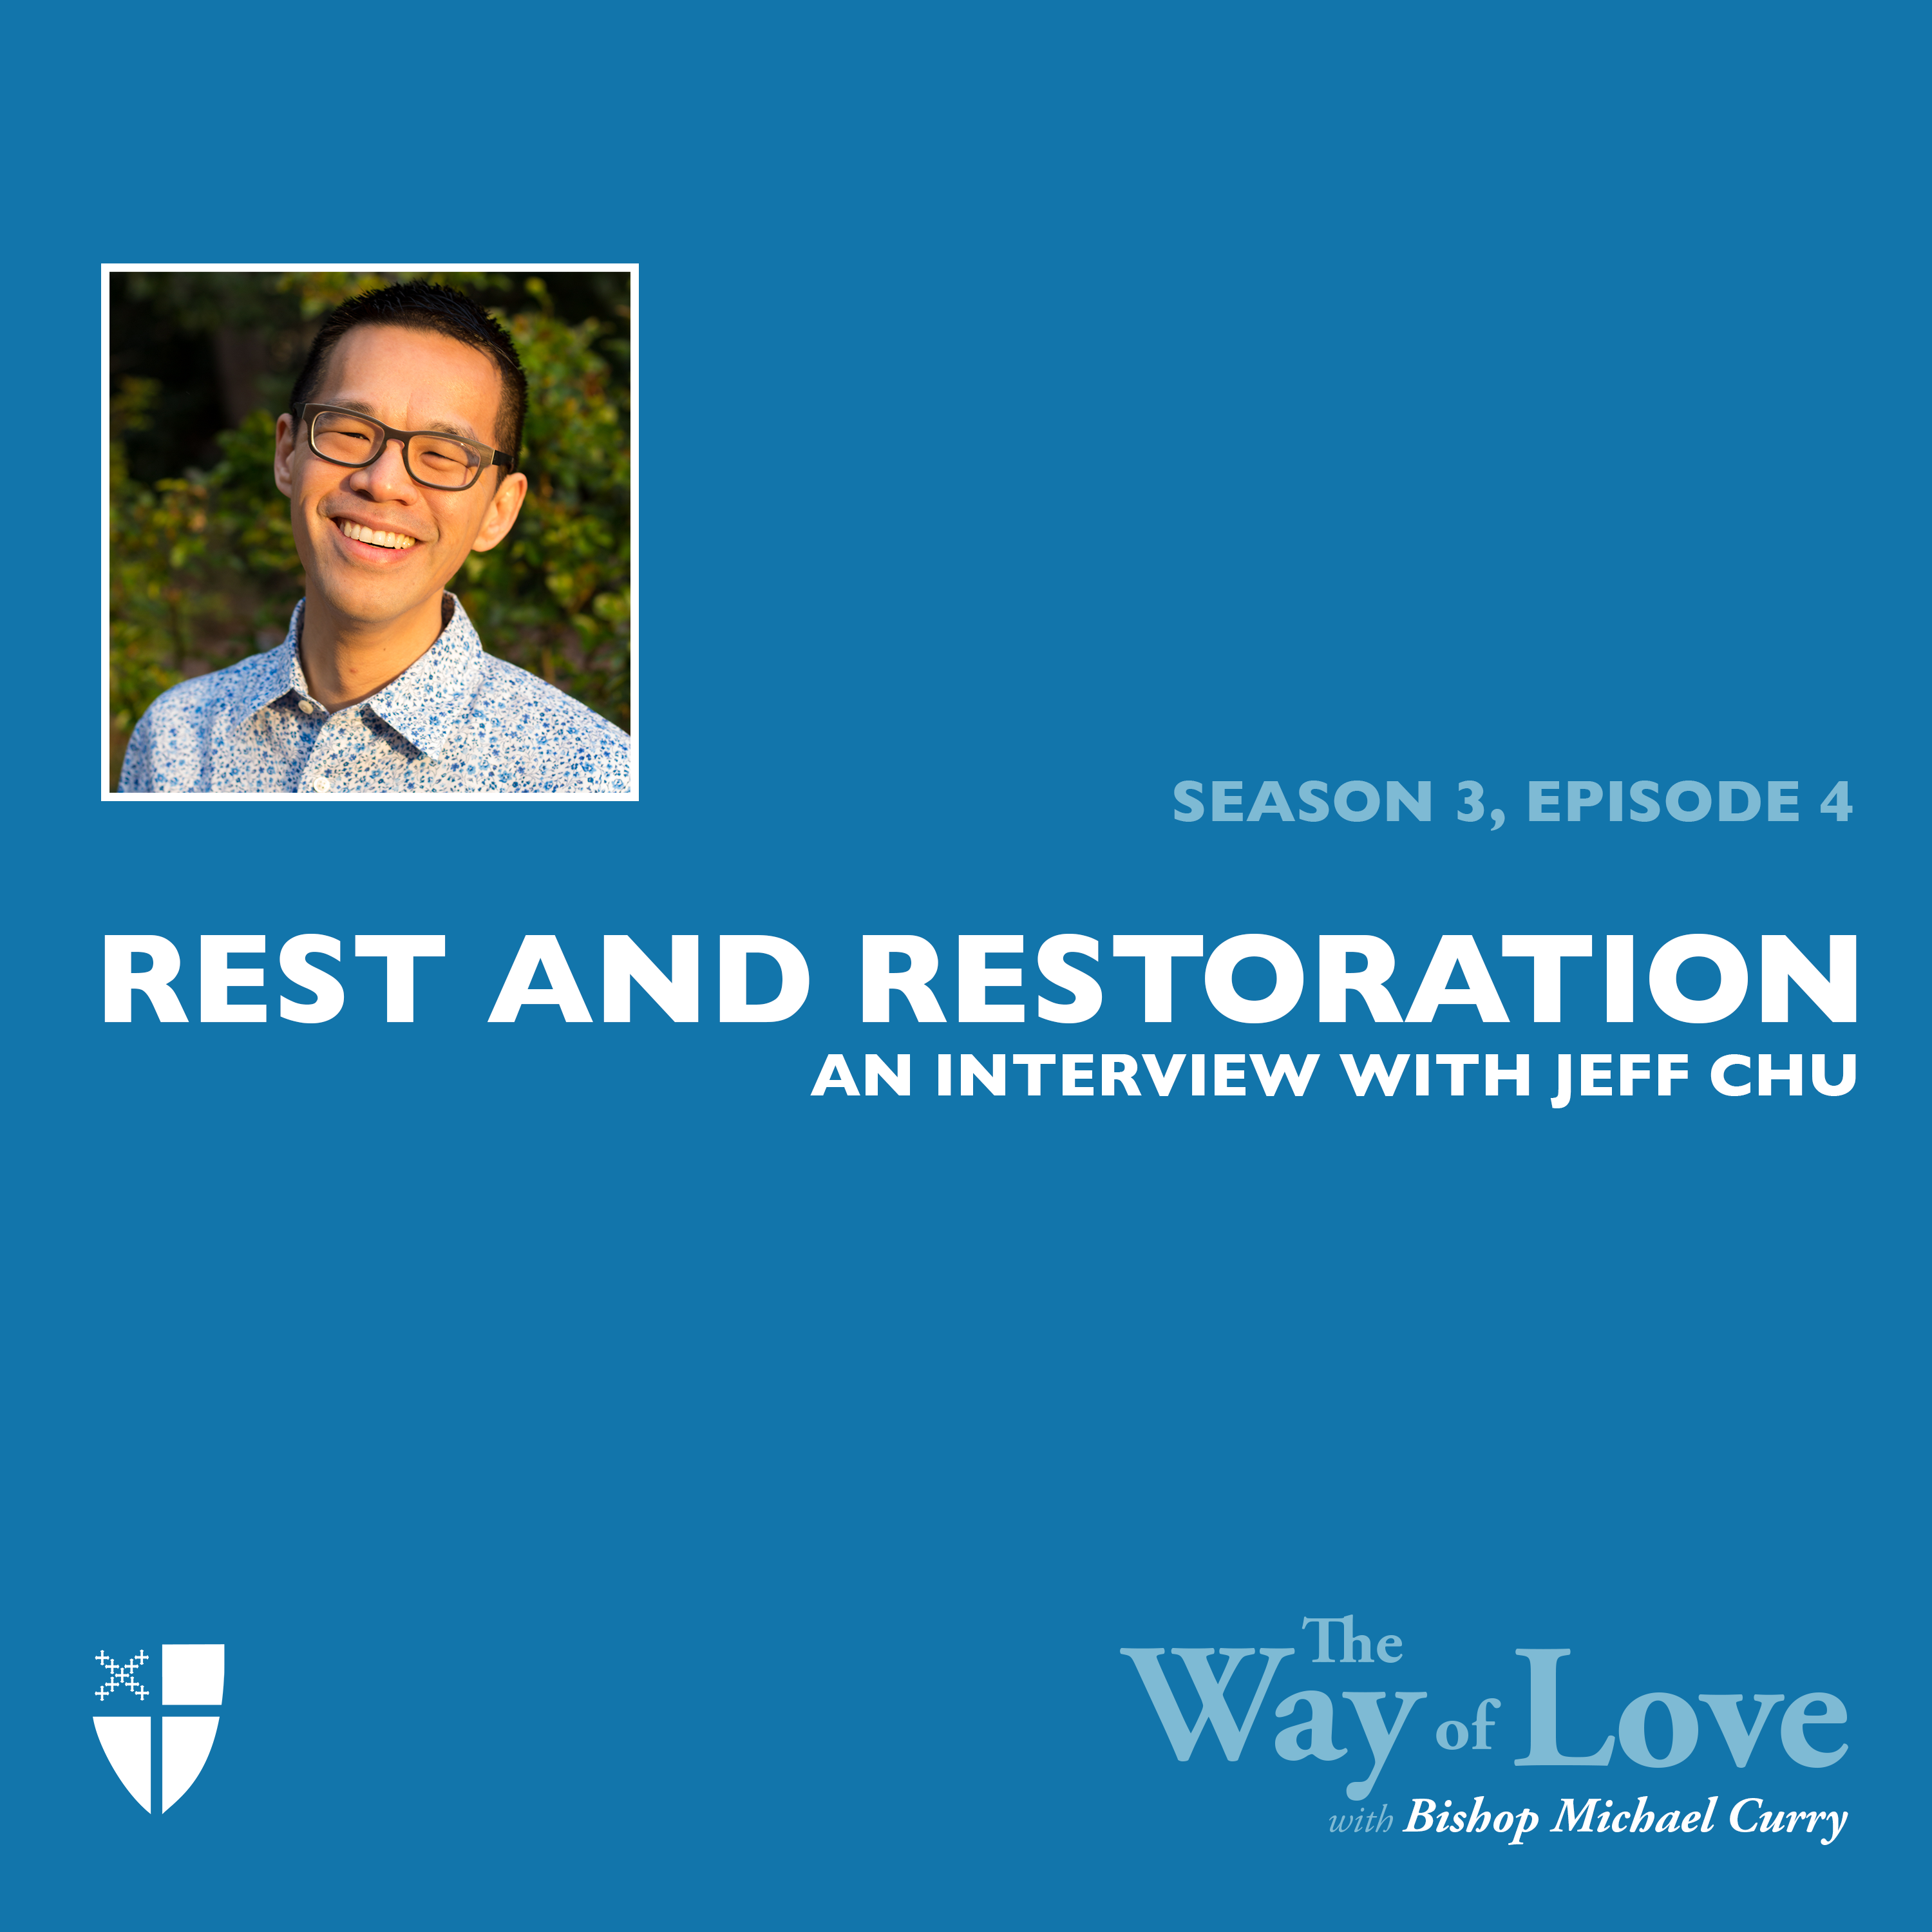 Rest and Restoration with Jeff Chu